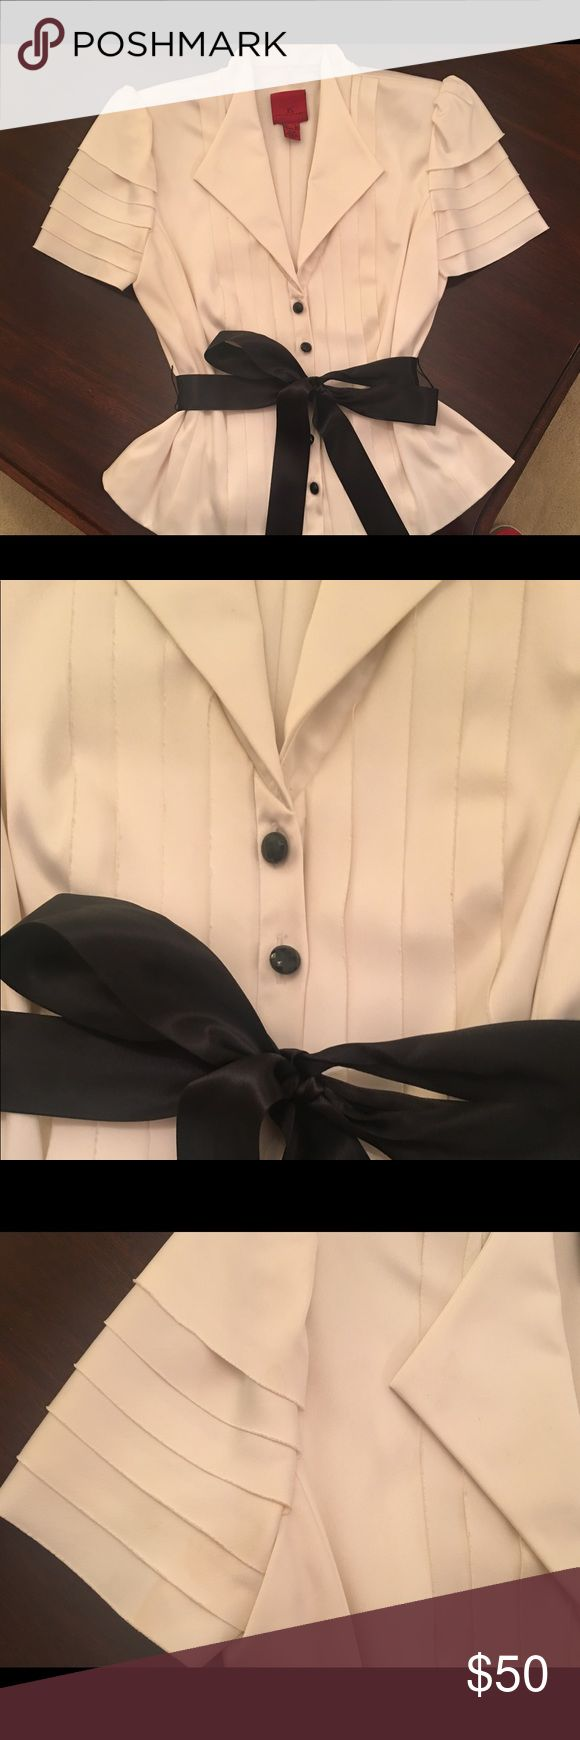 Ivory Satin Tuxedo Style Jacket Size 8 Stunning Ivory satin jacket with tuxedo pleats down the front. Sleeves also accented with pleats for a very sophisticated look. Black satin belt that ties in a bow in the front. Looks great with a black satin skirt or pants. Comes from a smoke and pet free home. JS Collections Jackets & Coats Blazers